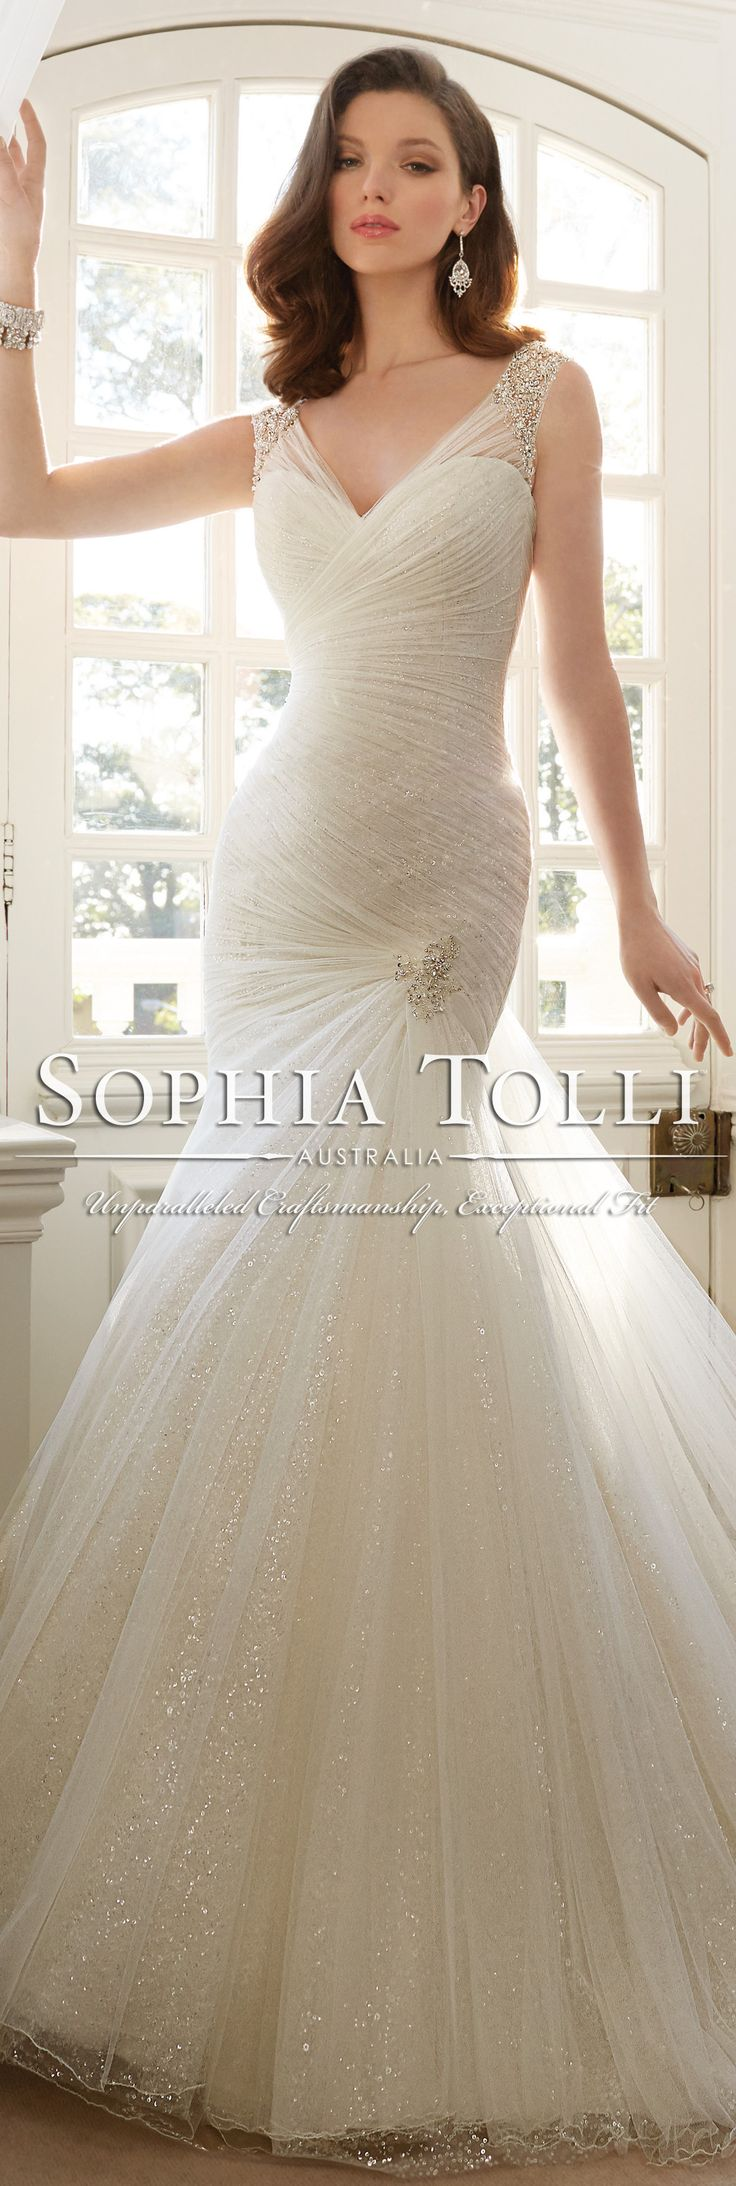 The Sophia Tolli Spring 2016 Wedding Dress Collection - Style No. Y11640 - Candace #trumpetweddingdress